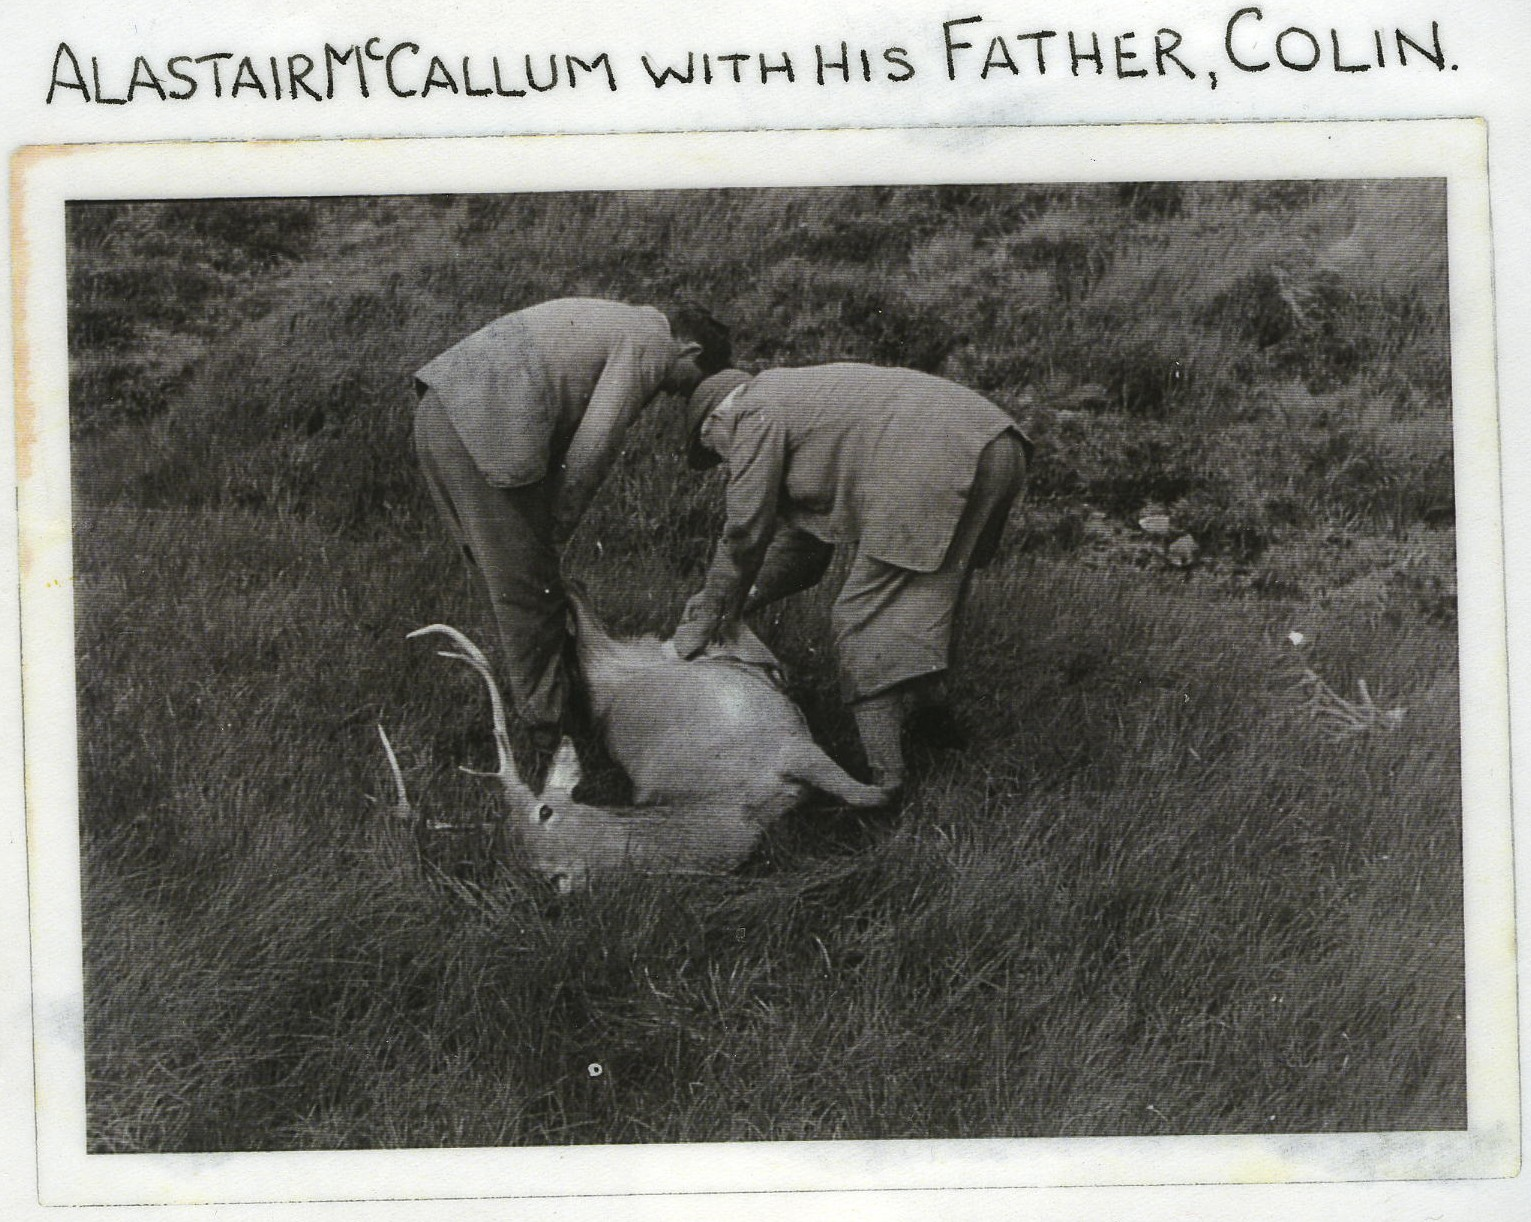 Alistair MacCallum with his father, Colin